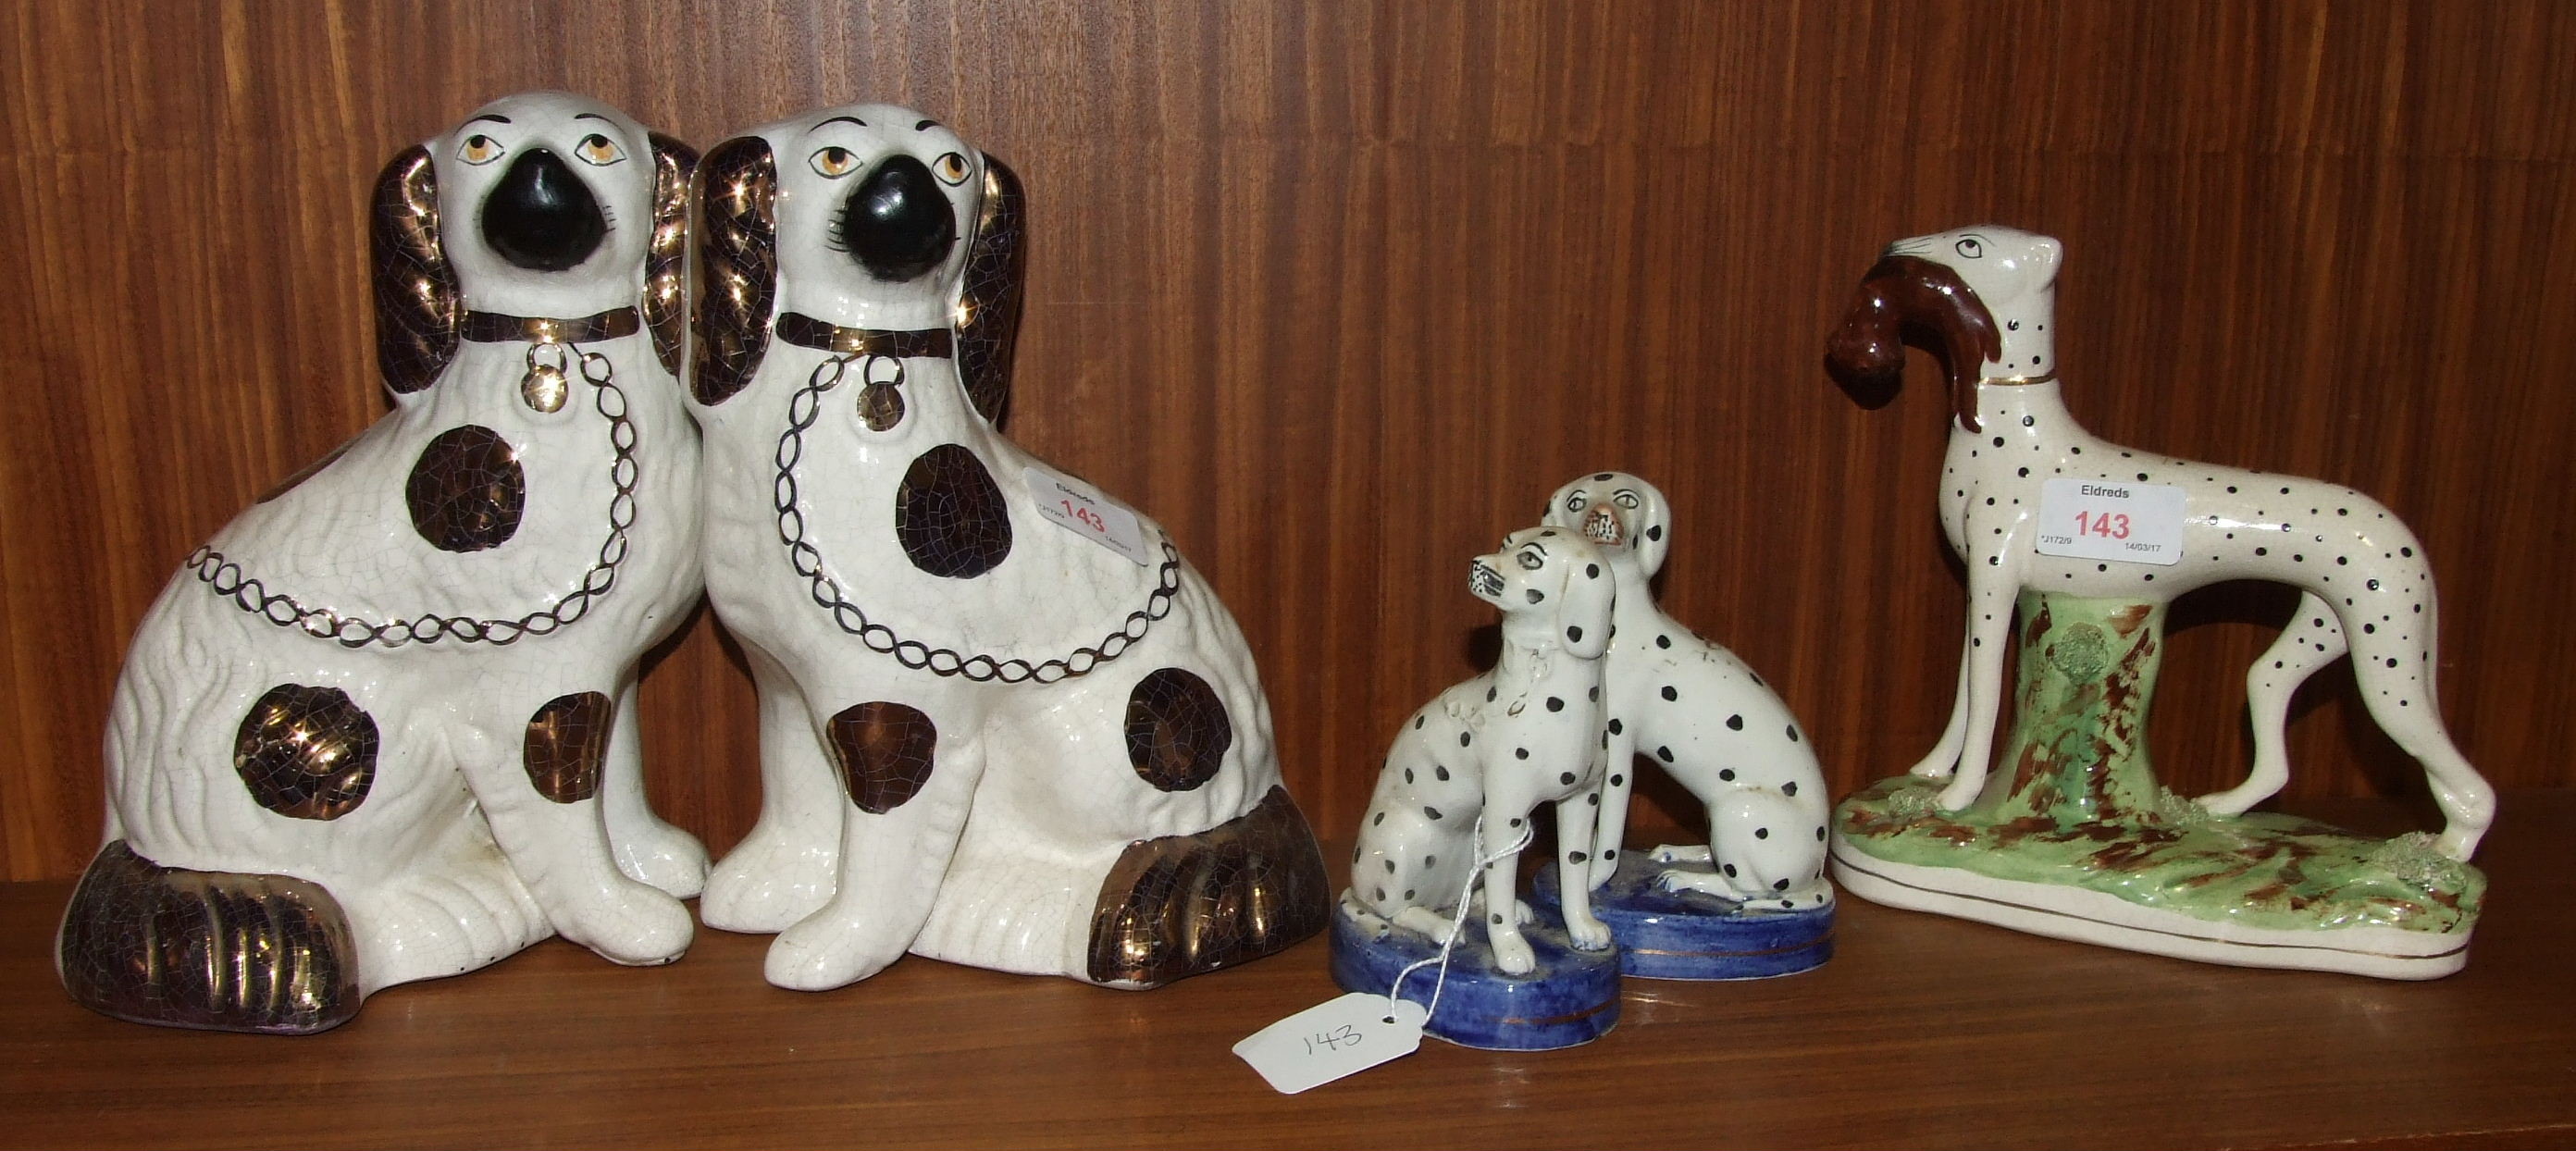 Lot 143 - A Staffordshire standing hound with a hare in it's mouth, on oval base, 19.5cm high, a pair of